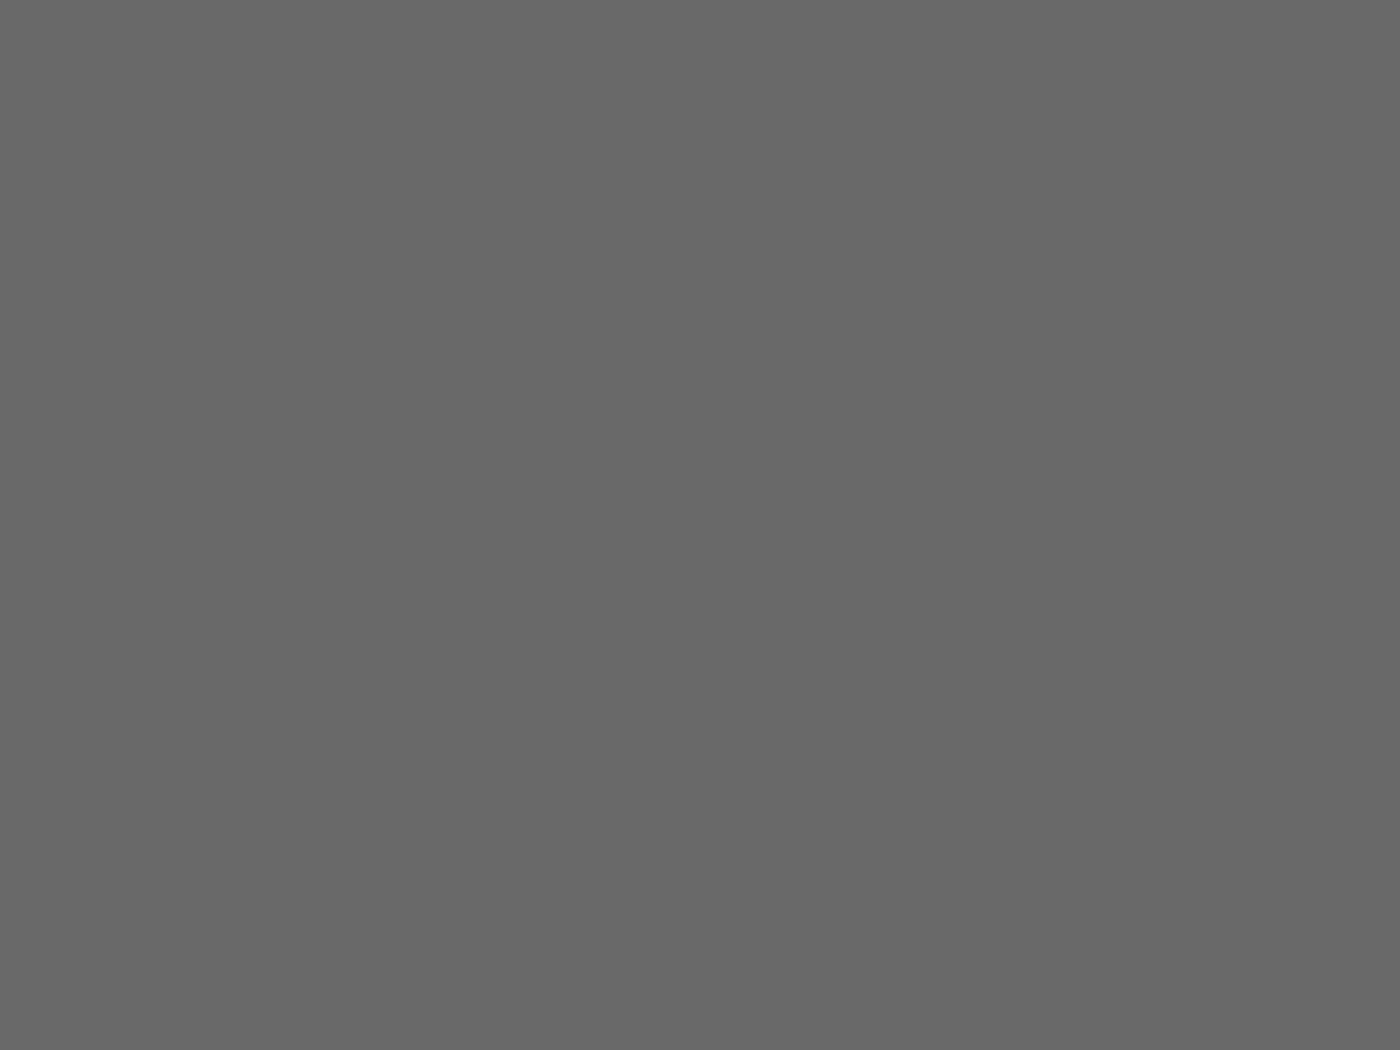 1400x1050 Dim Gray Solid Color Background